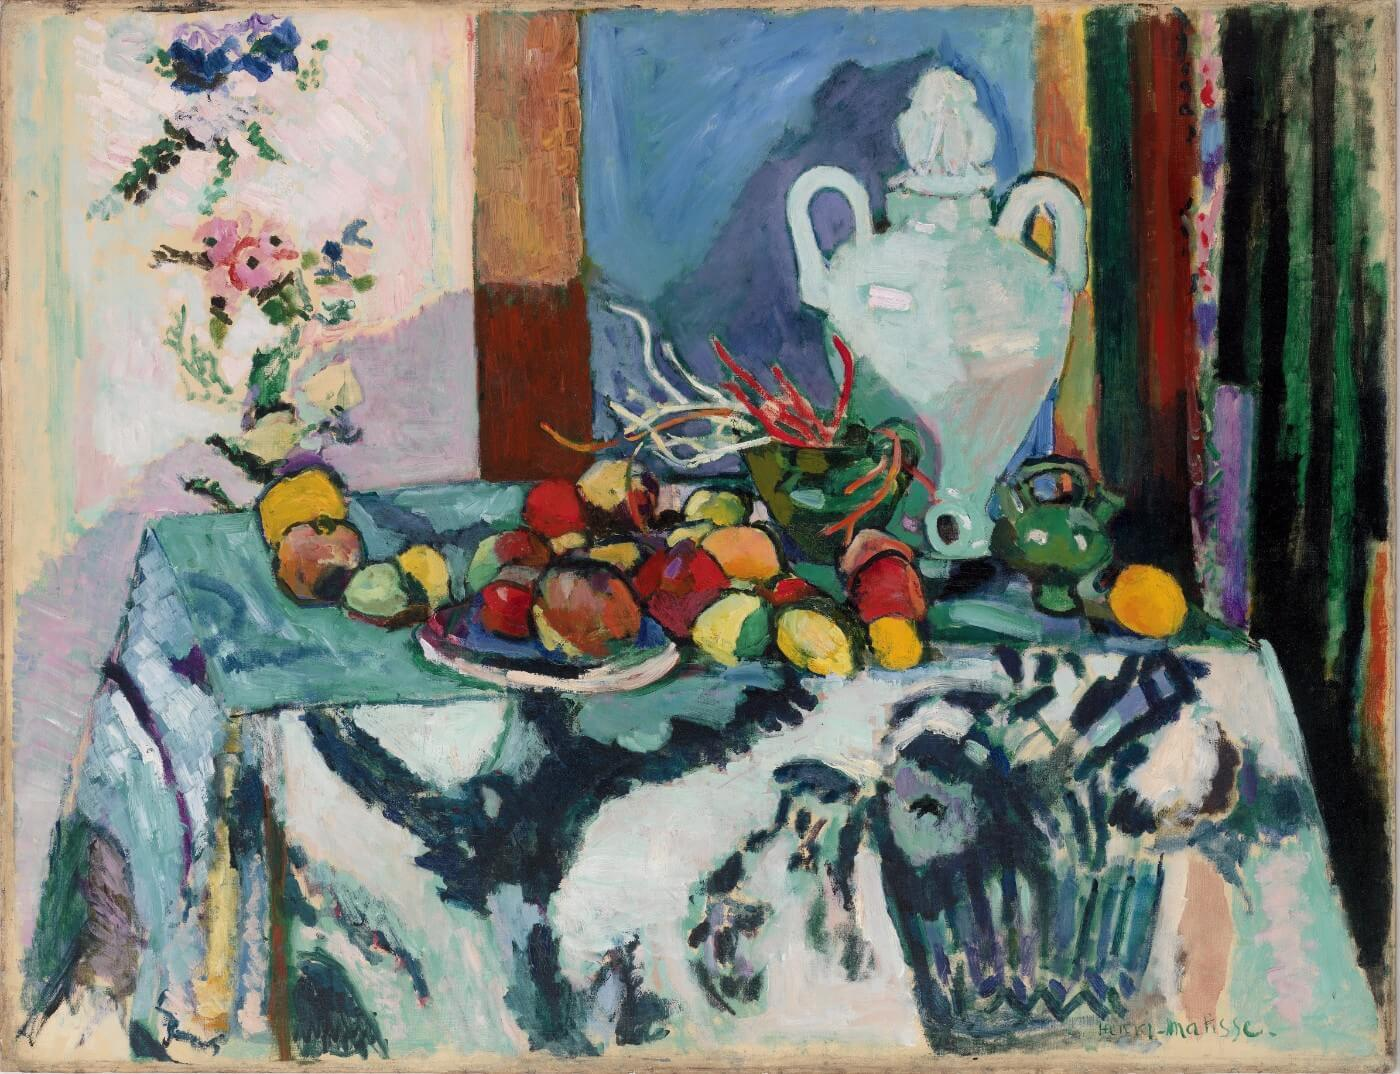 Henri Matisse Paintings | Buy Posters, Frames, Canvas, Digital Art & Large Size Prints Of The Famous Modern Master's Artworks